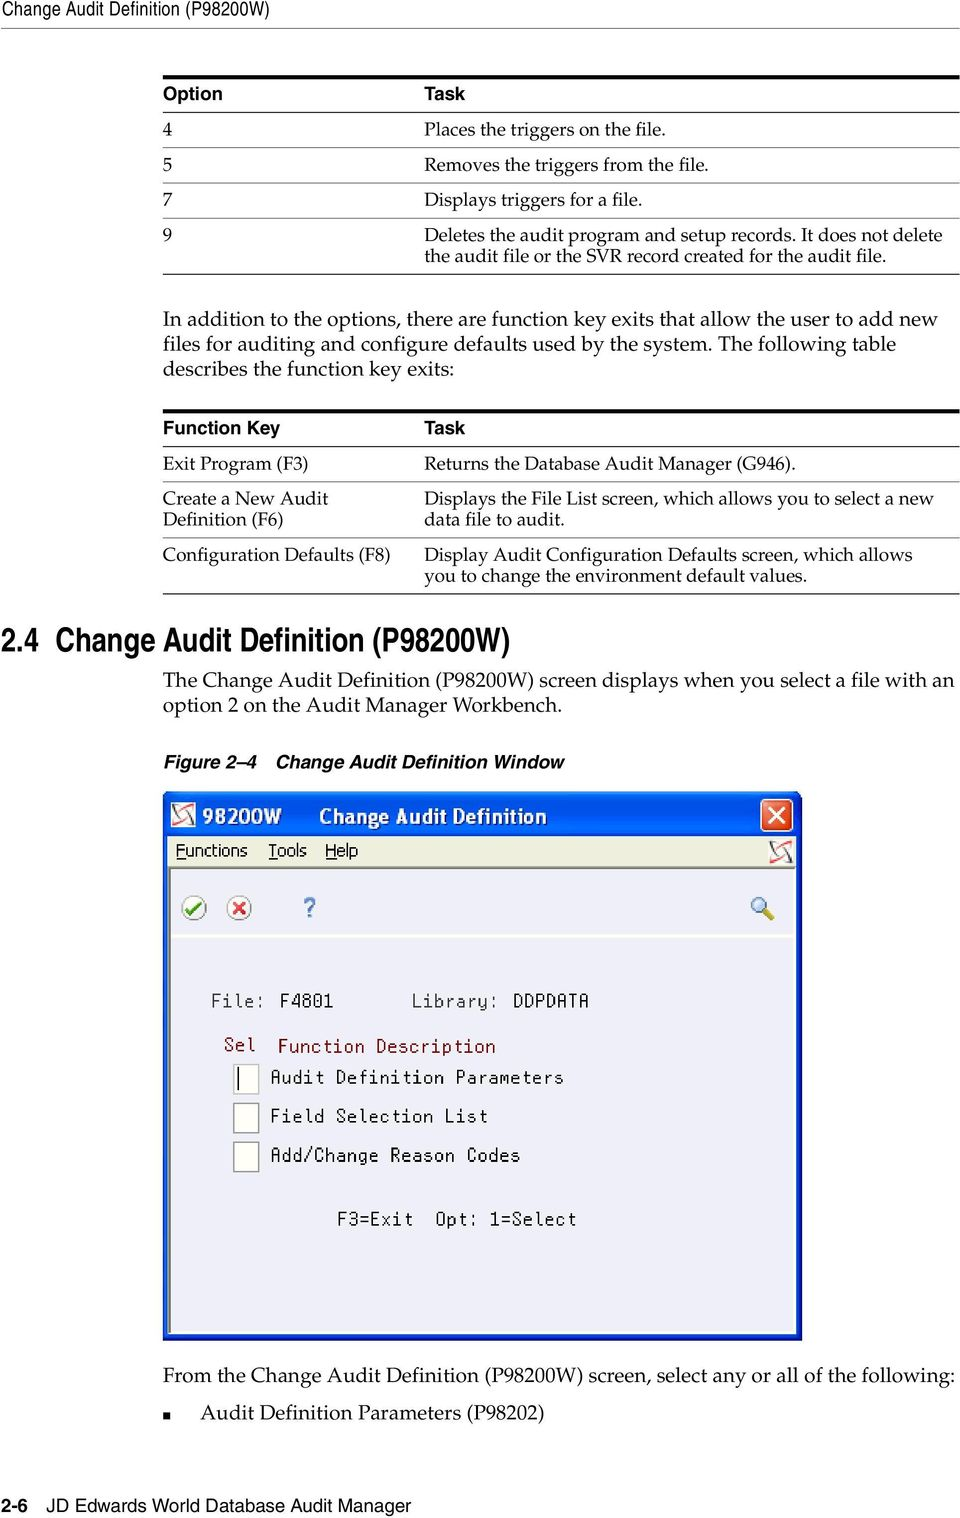 In addition to the options, there are function key exits that allow the user to add new files for auditing and configure defaults used by the system.